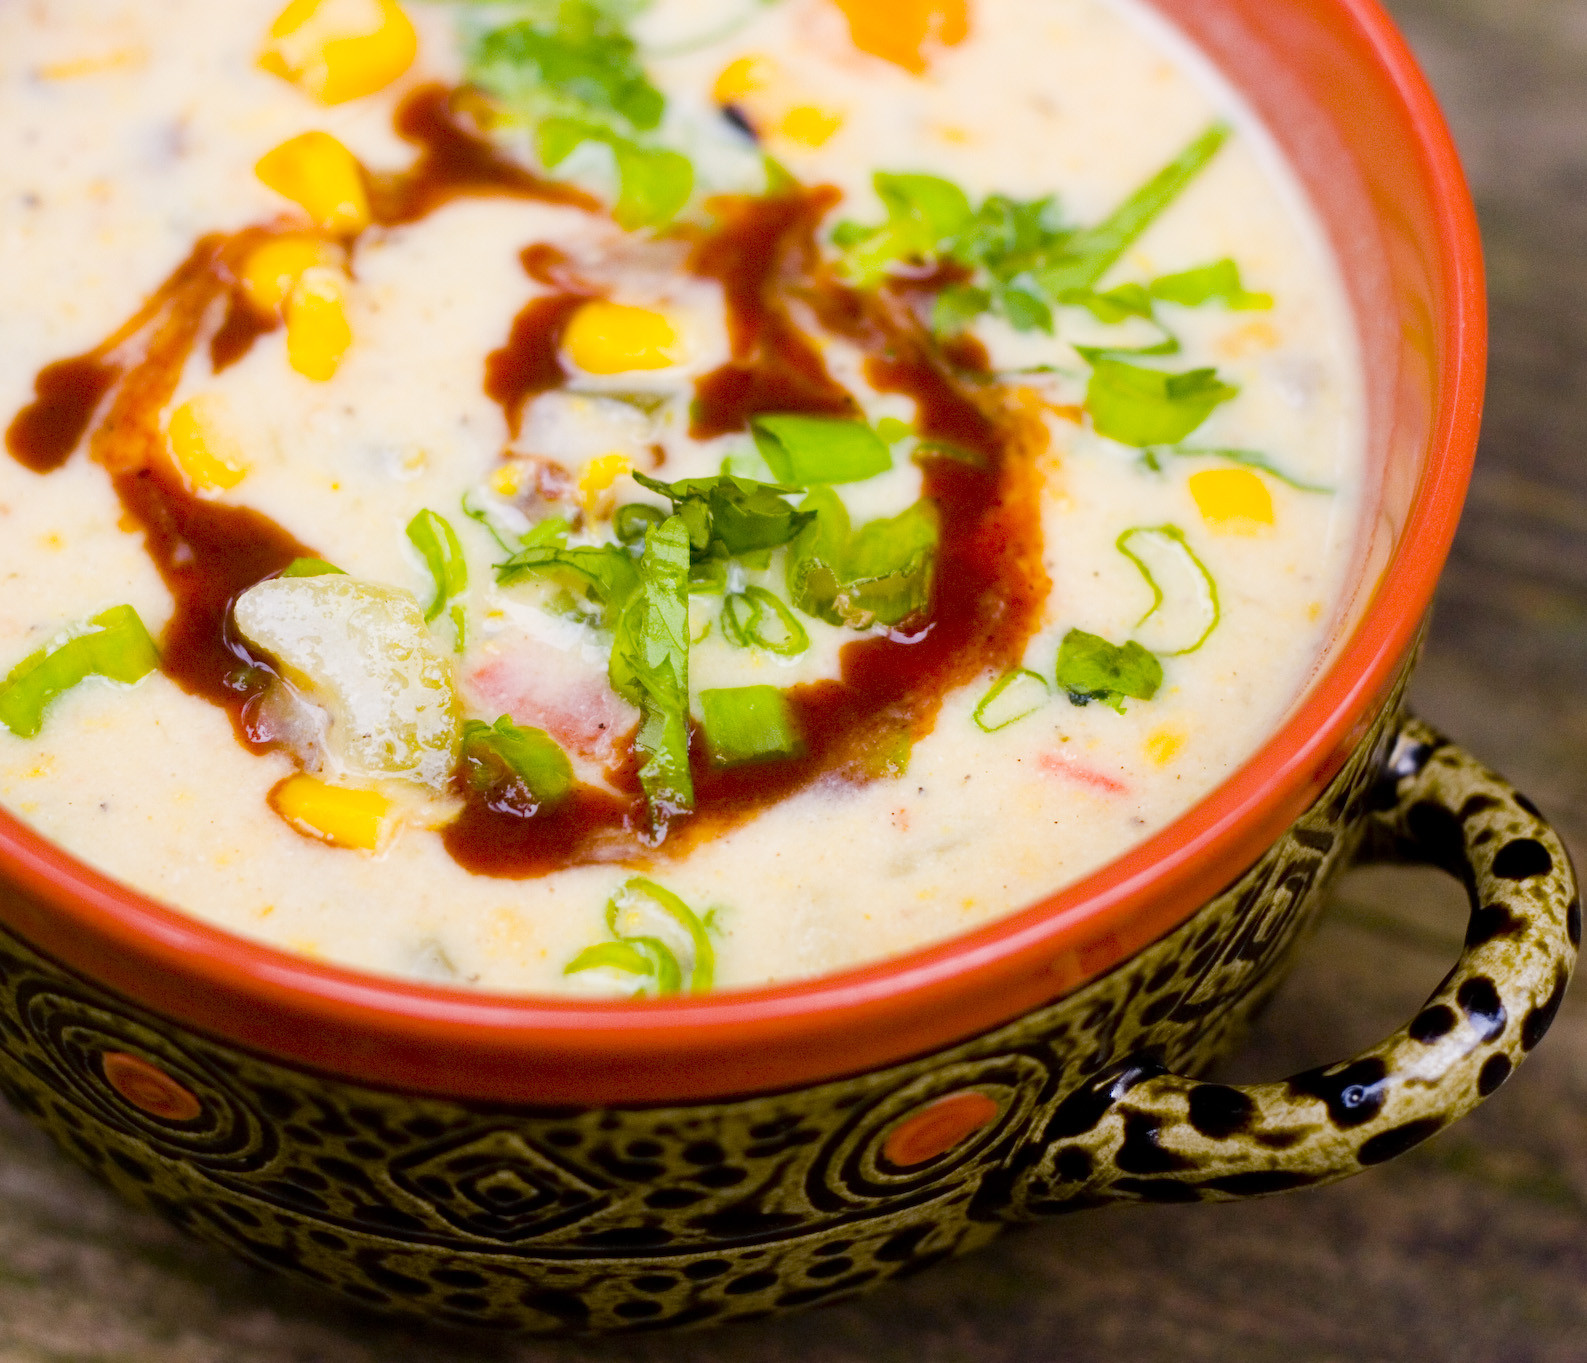 Vegan Corn Chowder  No Face Plate Out of Hand Sick Delicious Corn Chowder